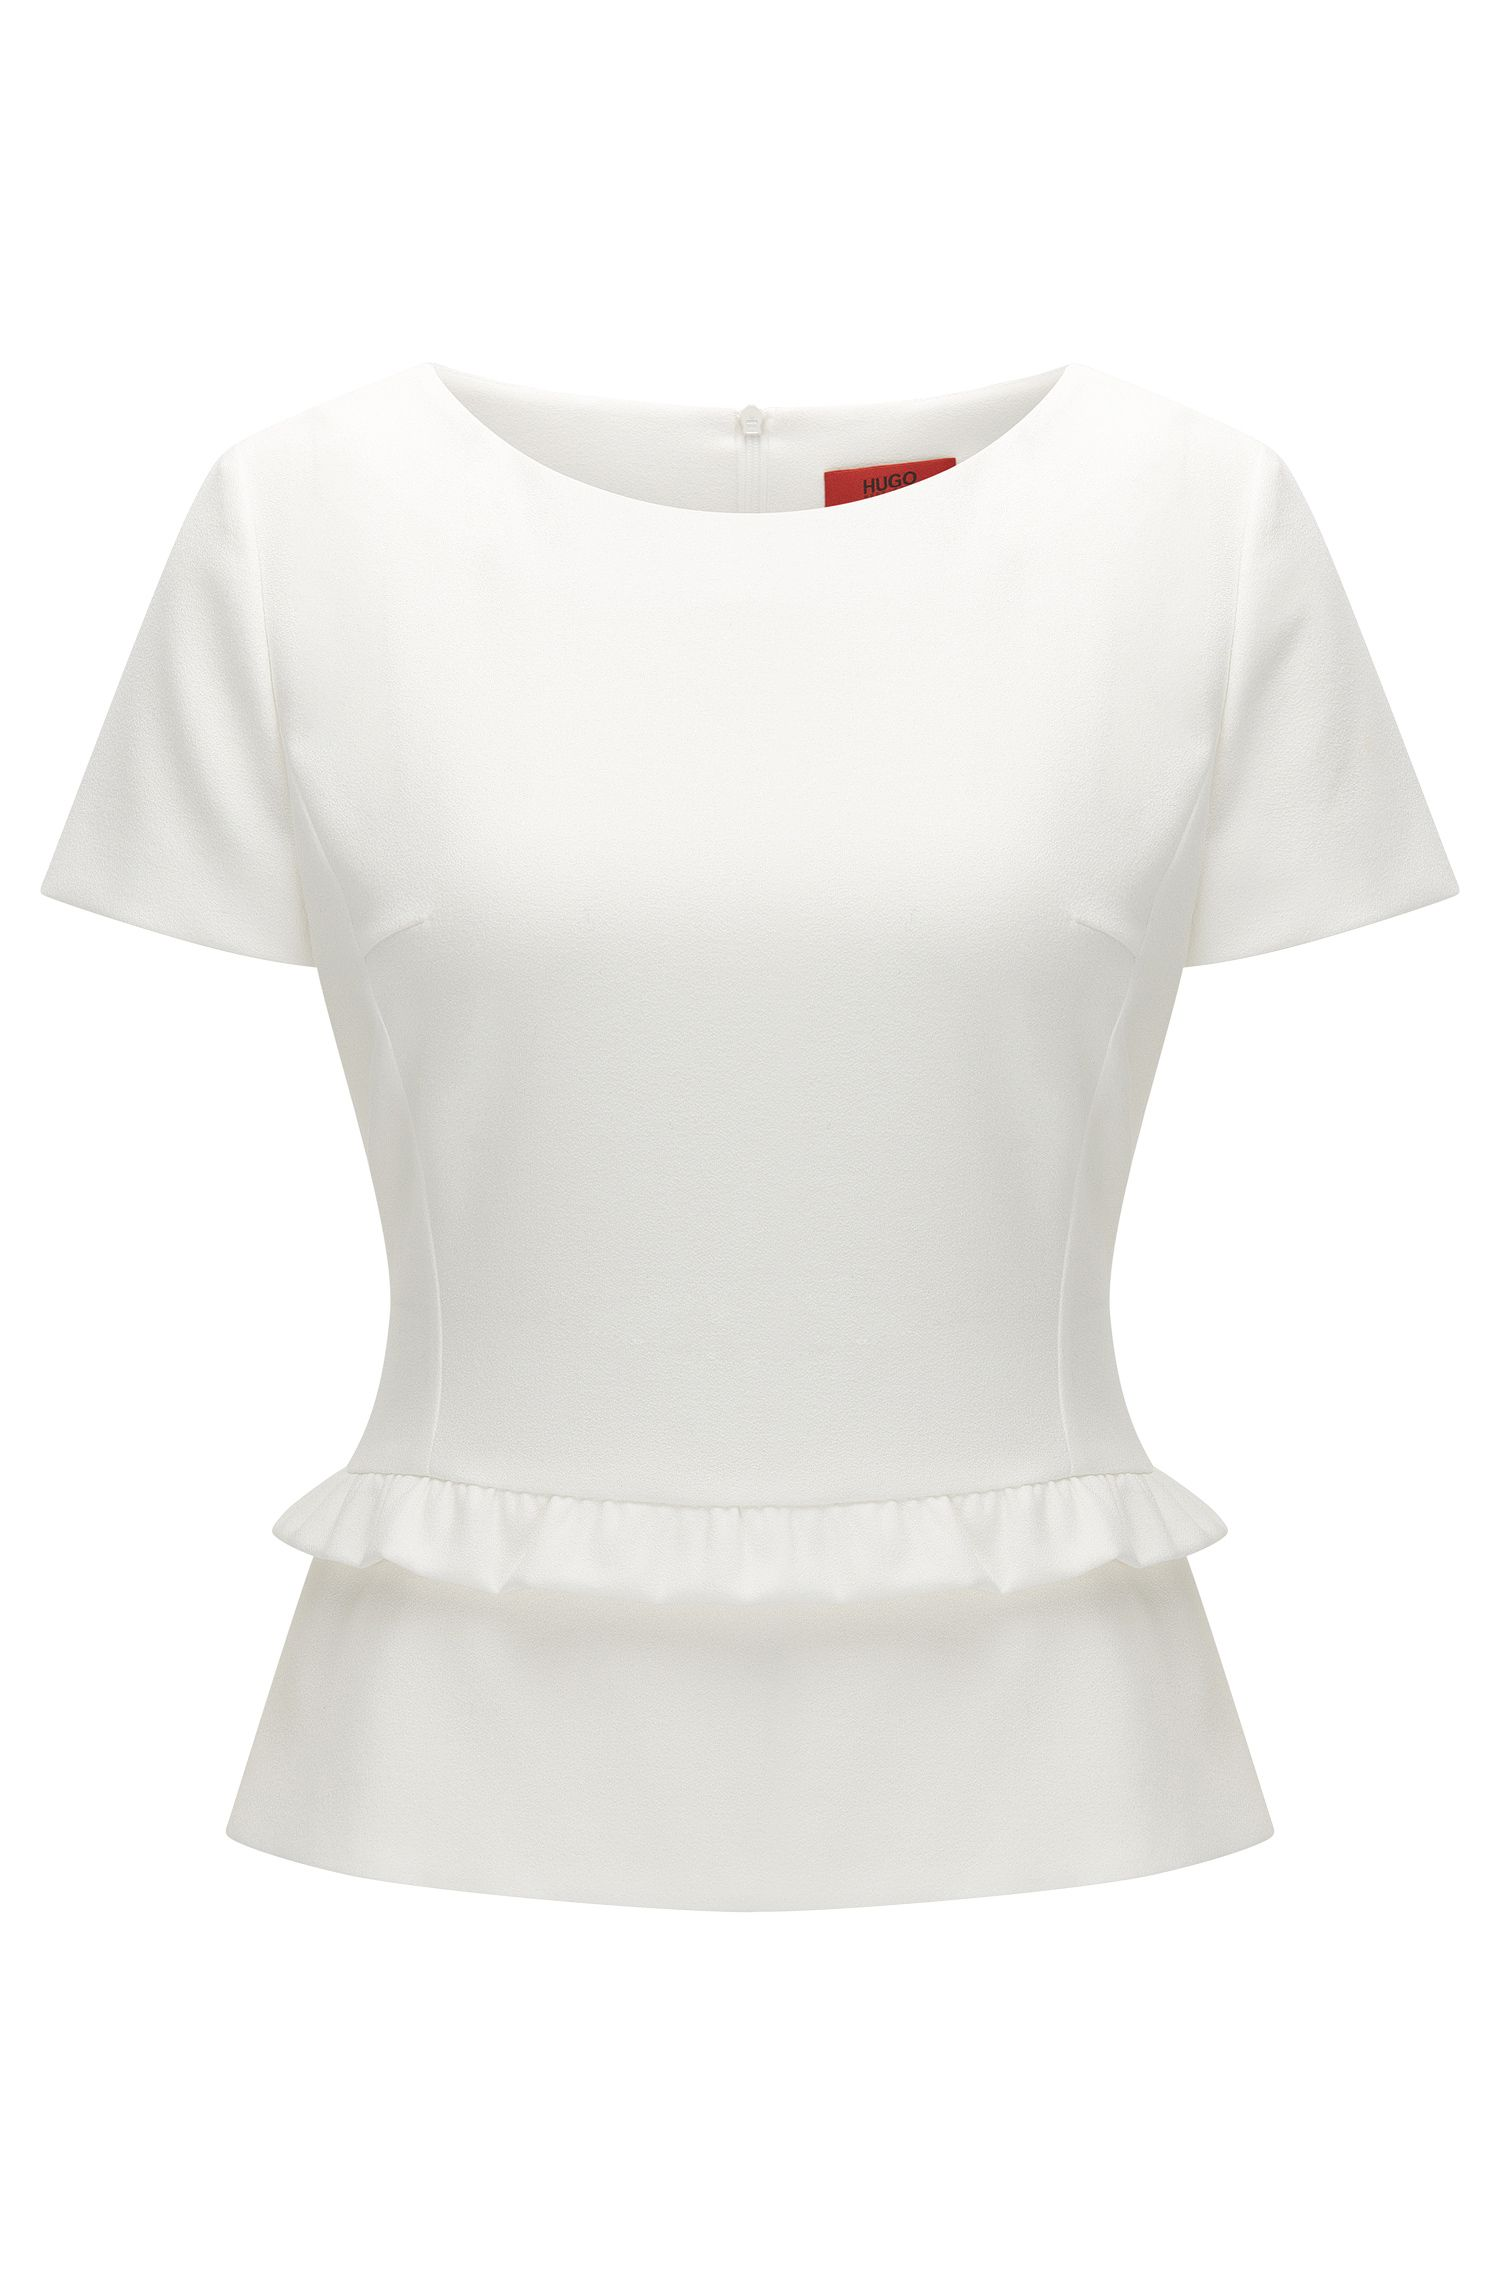 Regular-fit top with ruffled peplum